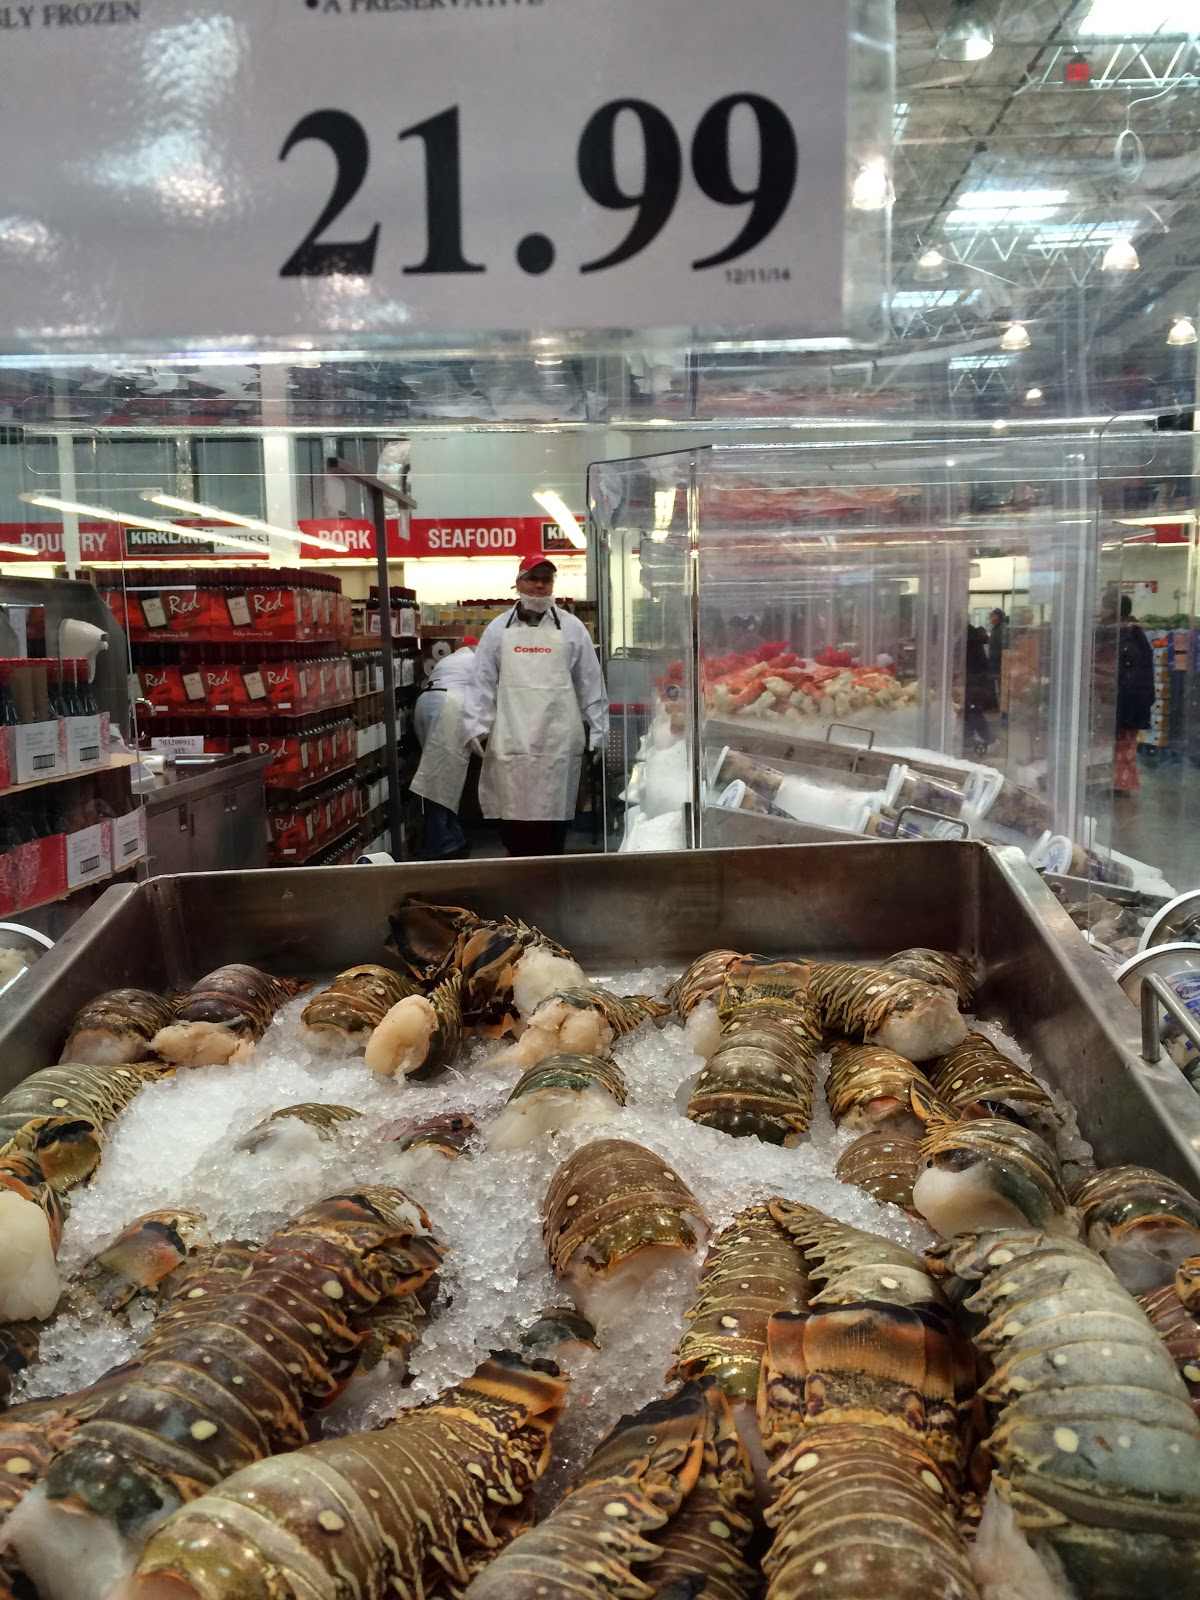 Do You Really Know What You're Eating?: This Costco is ...